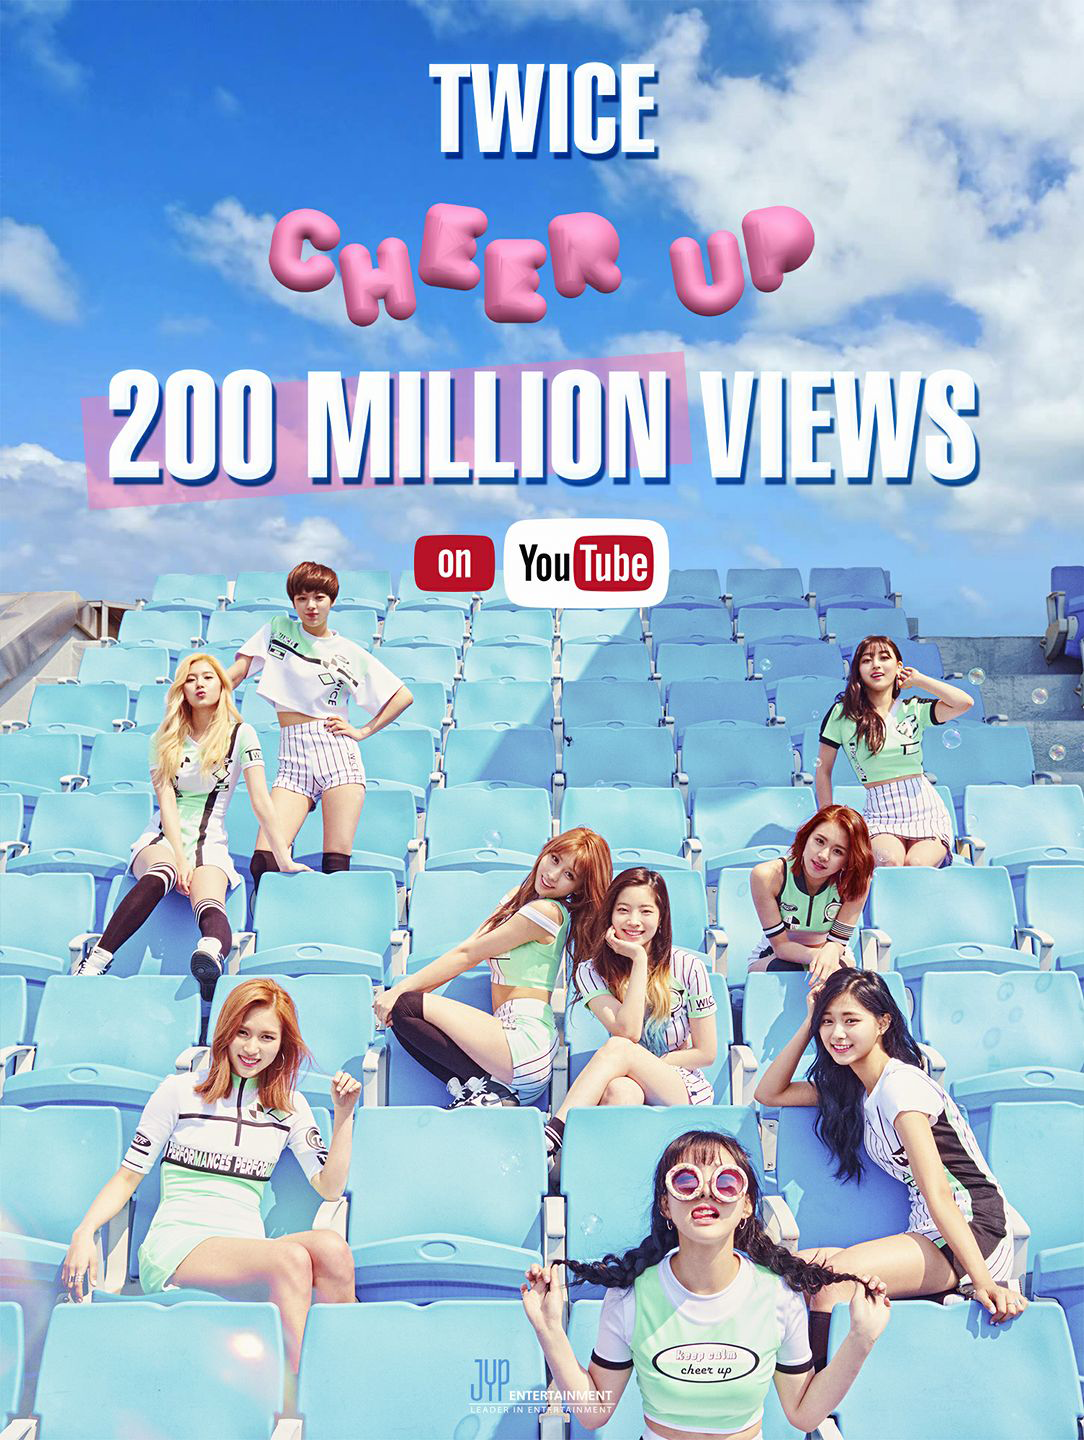 TWICE Cheer Up 200M views photo.png